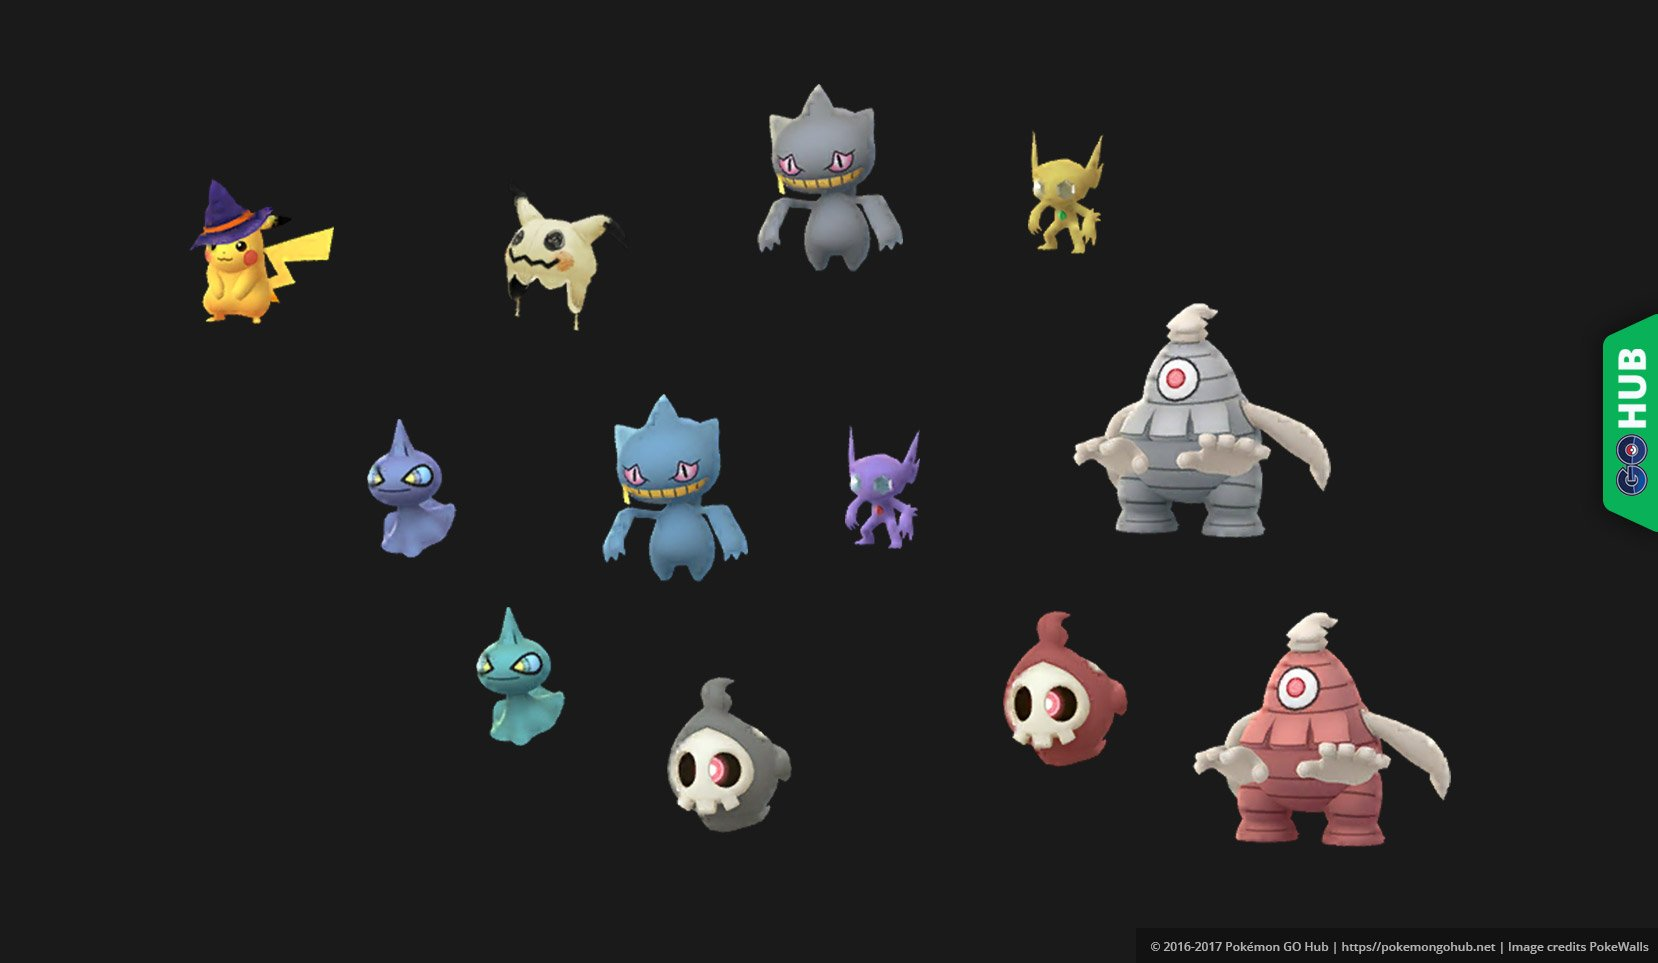 Shiny Shuppet and Banette are now available in Pokémon GO ...